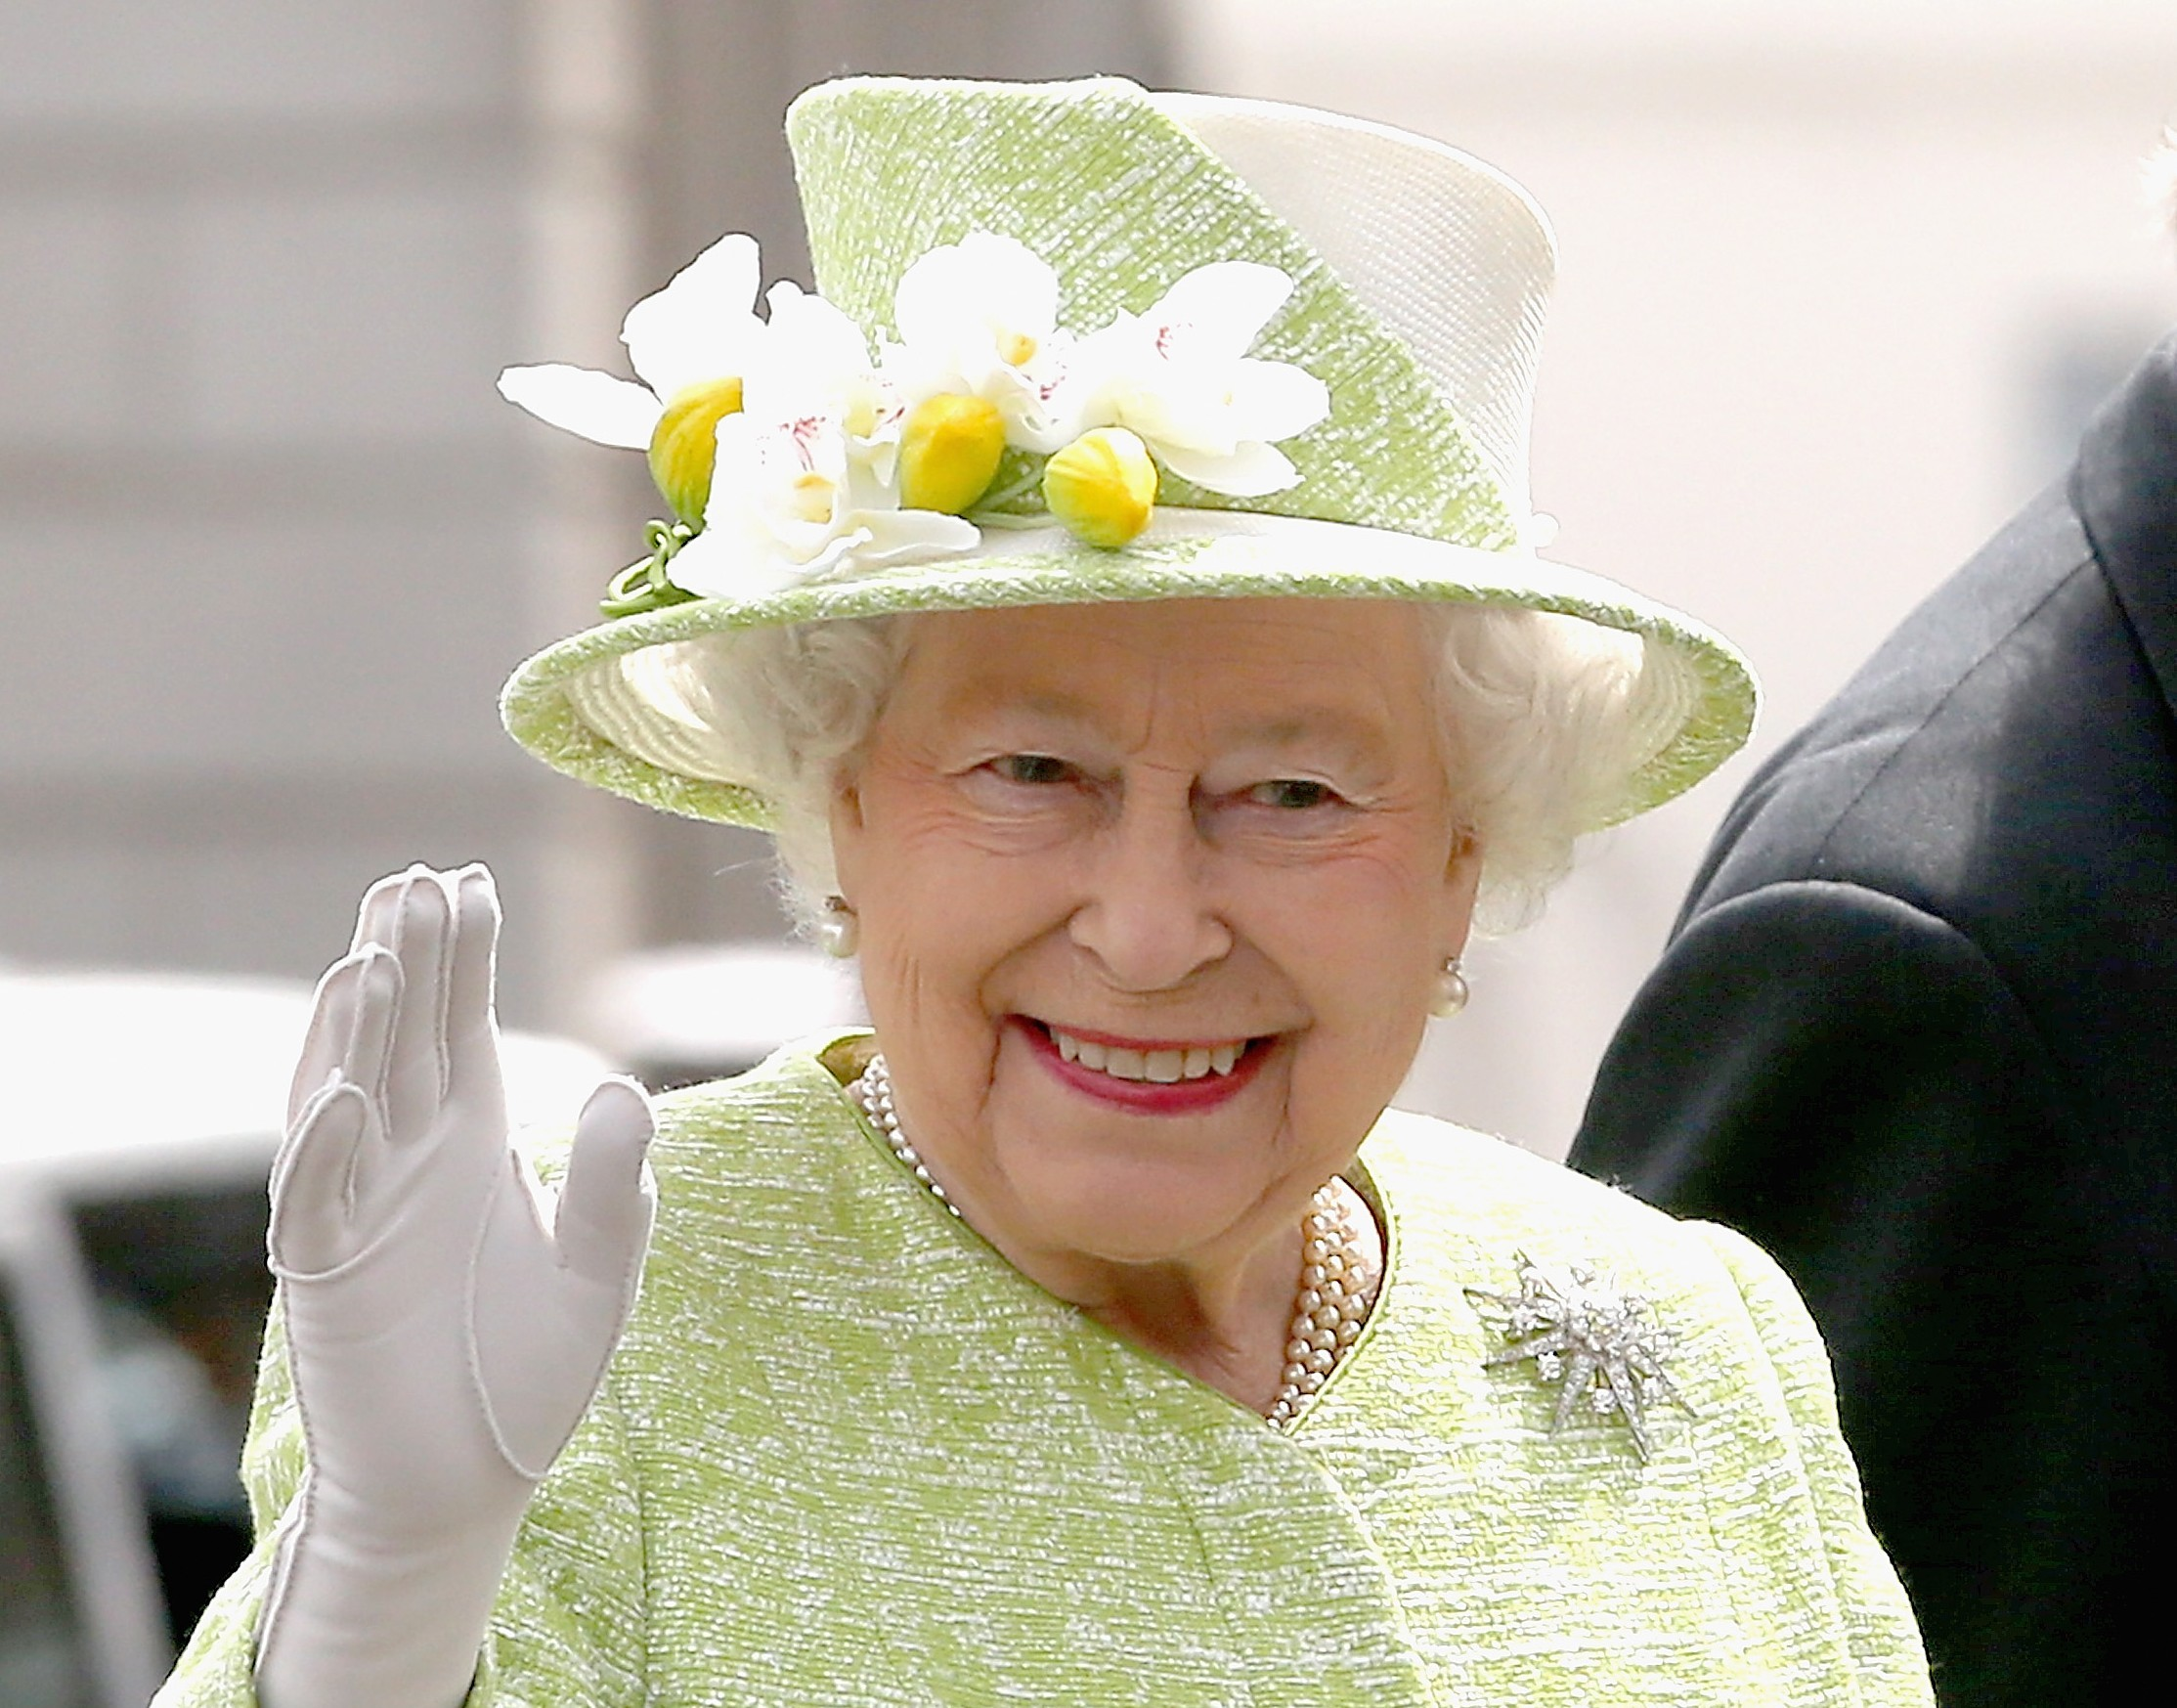 The Queen (Chris Jackson/Getty Images)